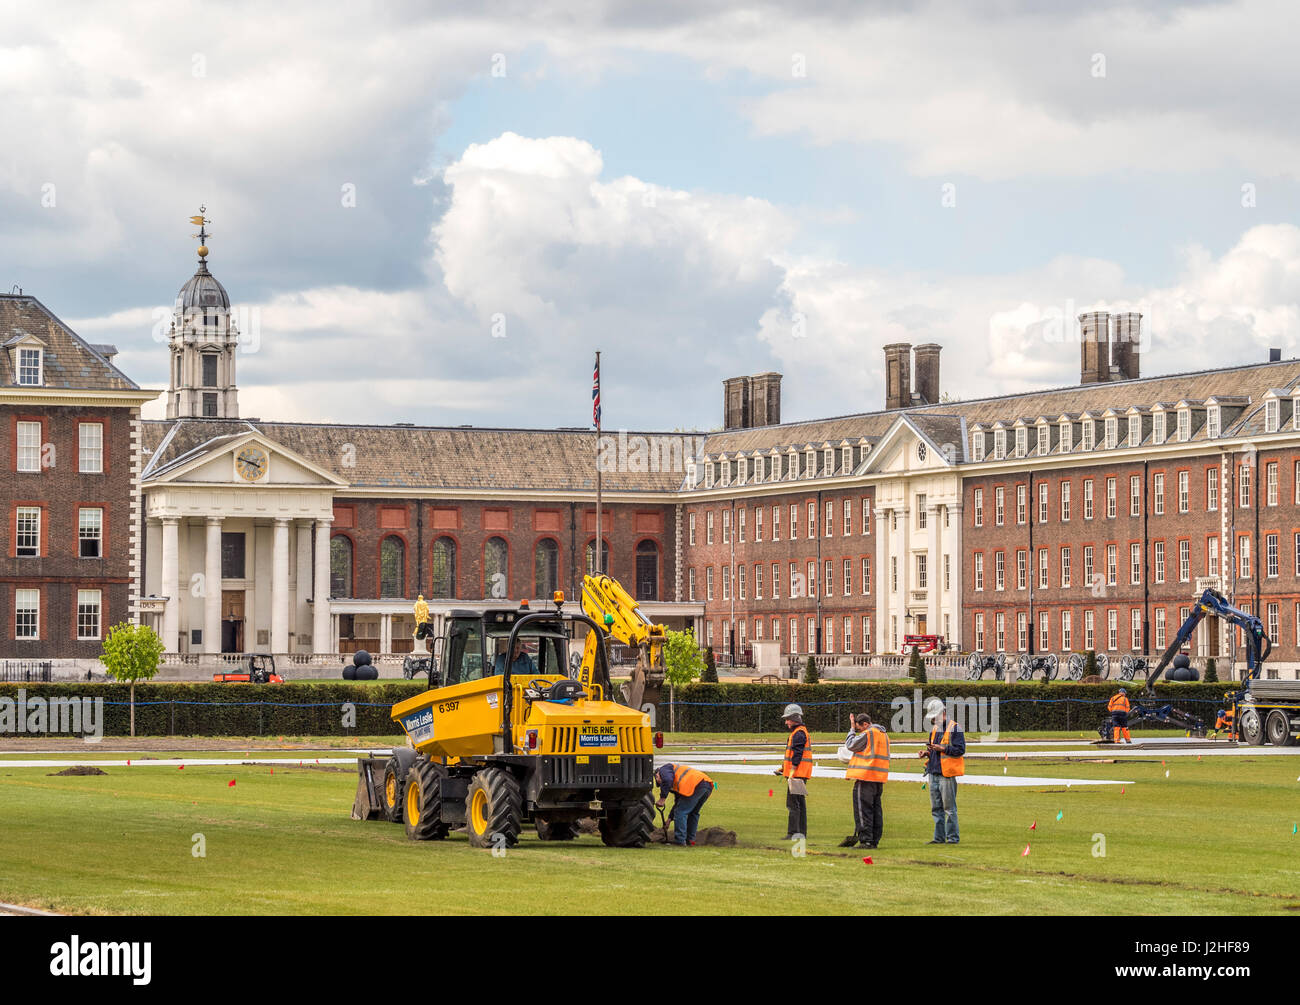 Vorbereitungen für die Chelsea Flower Show im Royal Hospital Chelsea, London, UK. Stockbild